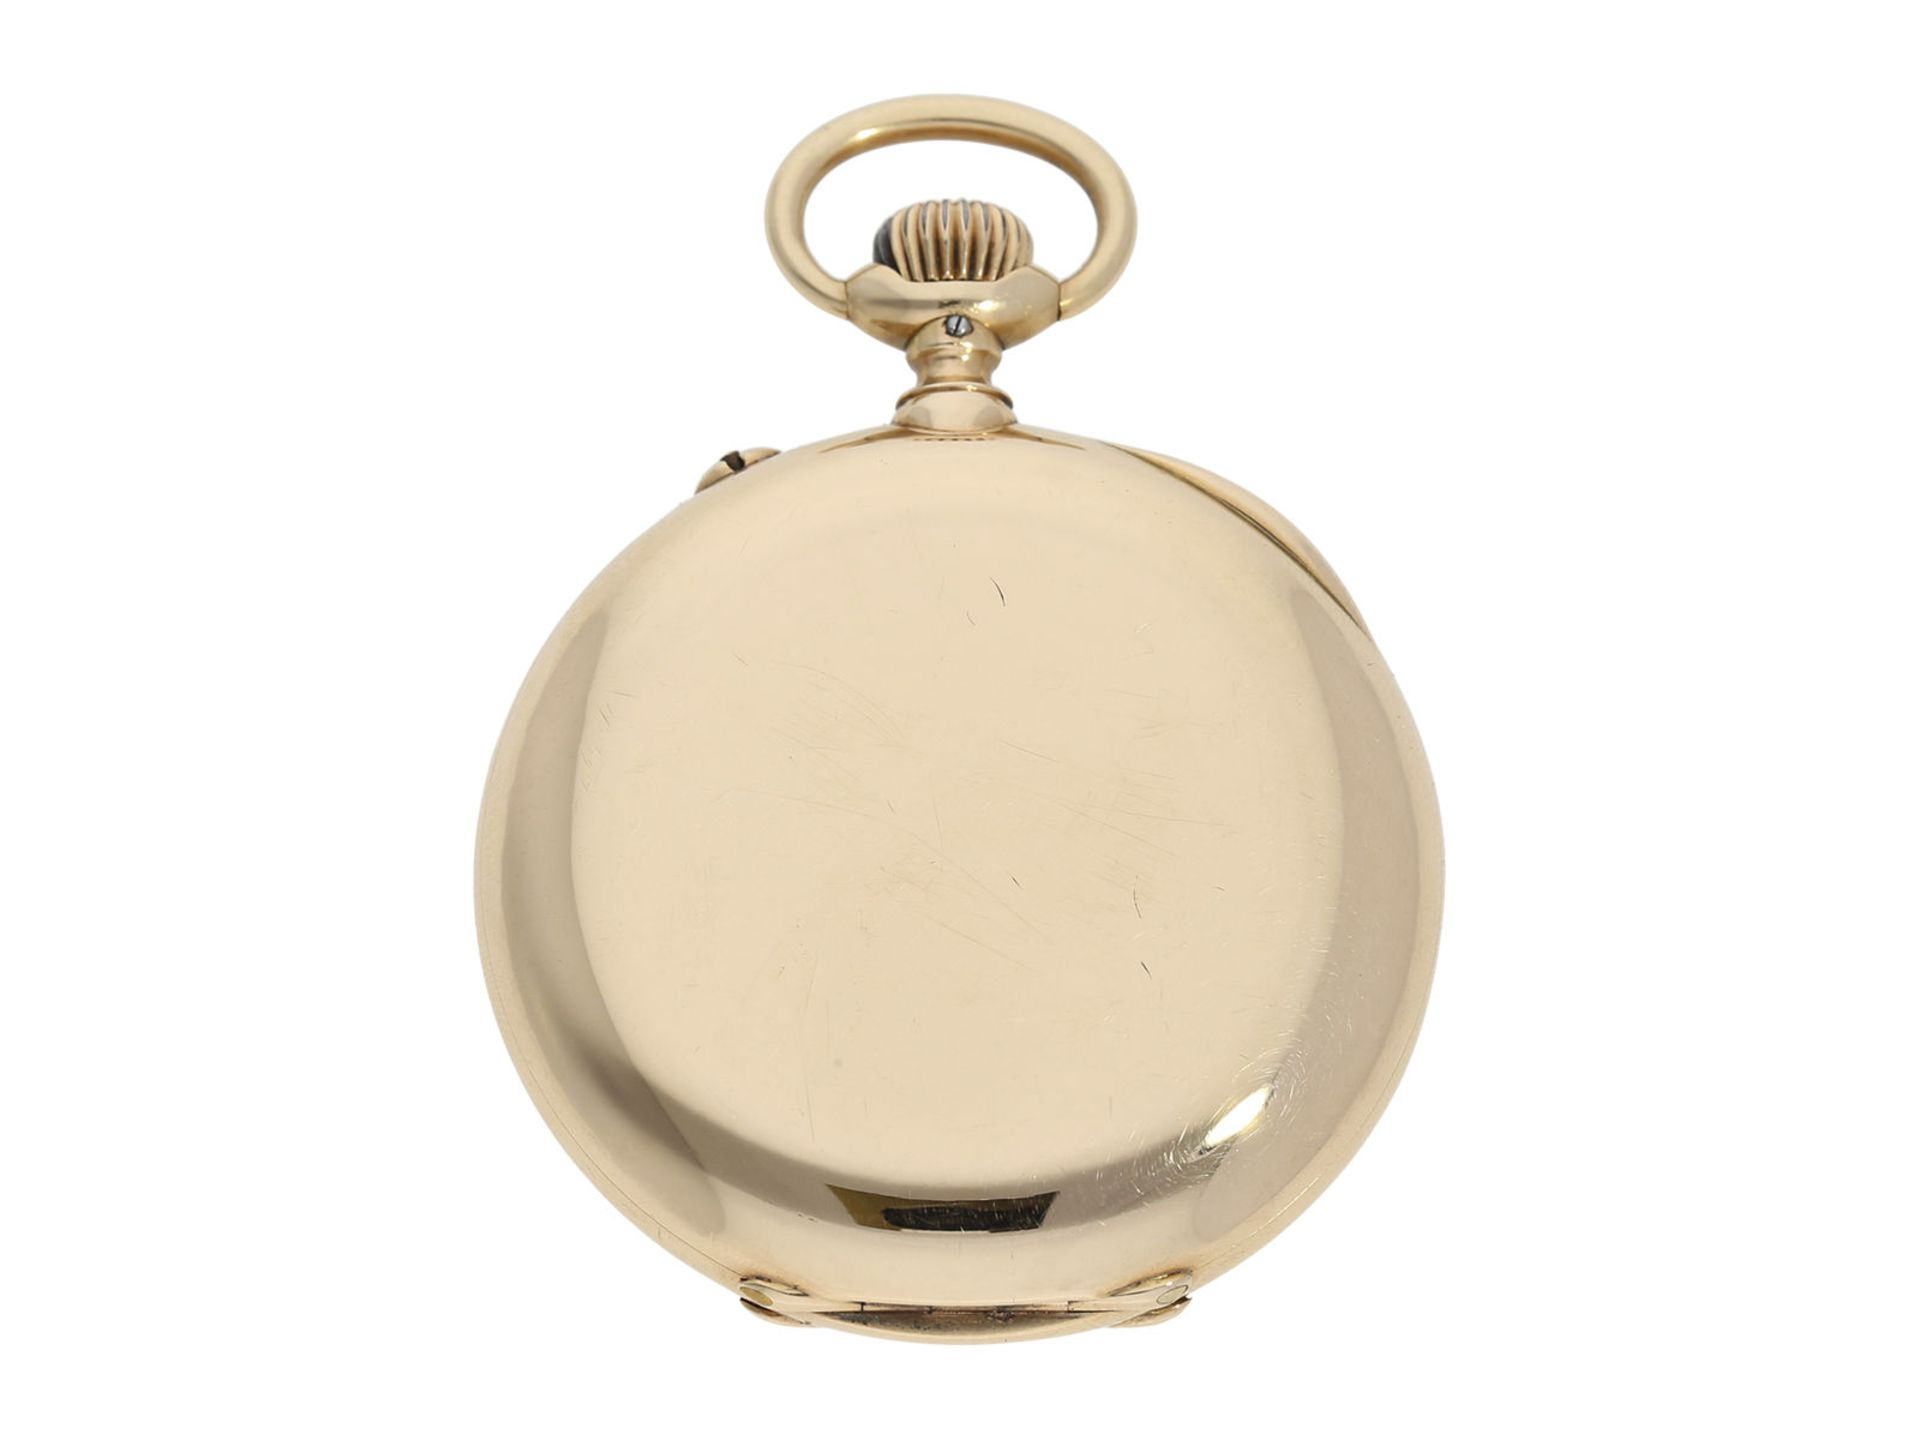 "Pocket watch: very rare IWC precision pocket watch quality ""EXTRA"", No. 181428, Schaffhausen ca. - Bild 6 aus 6"